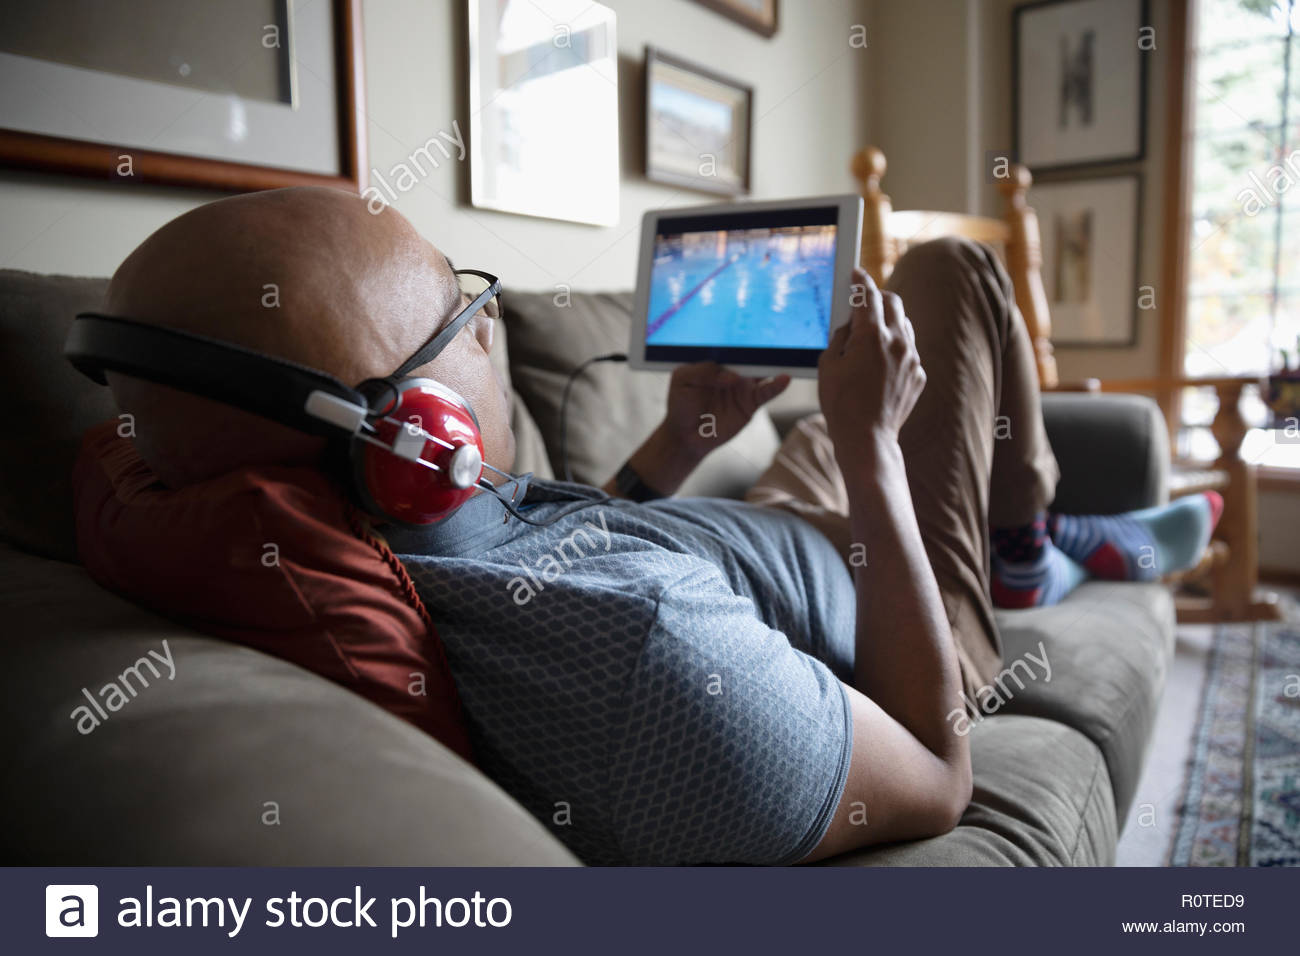 Latinx man with headphones watching sports with digital tablet on sofa - Stock Image